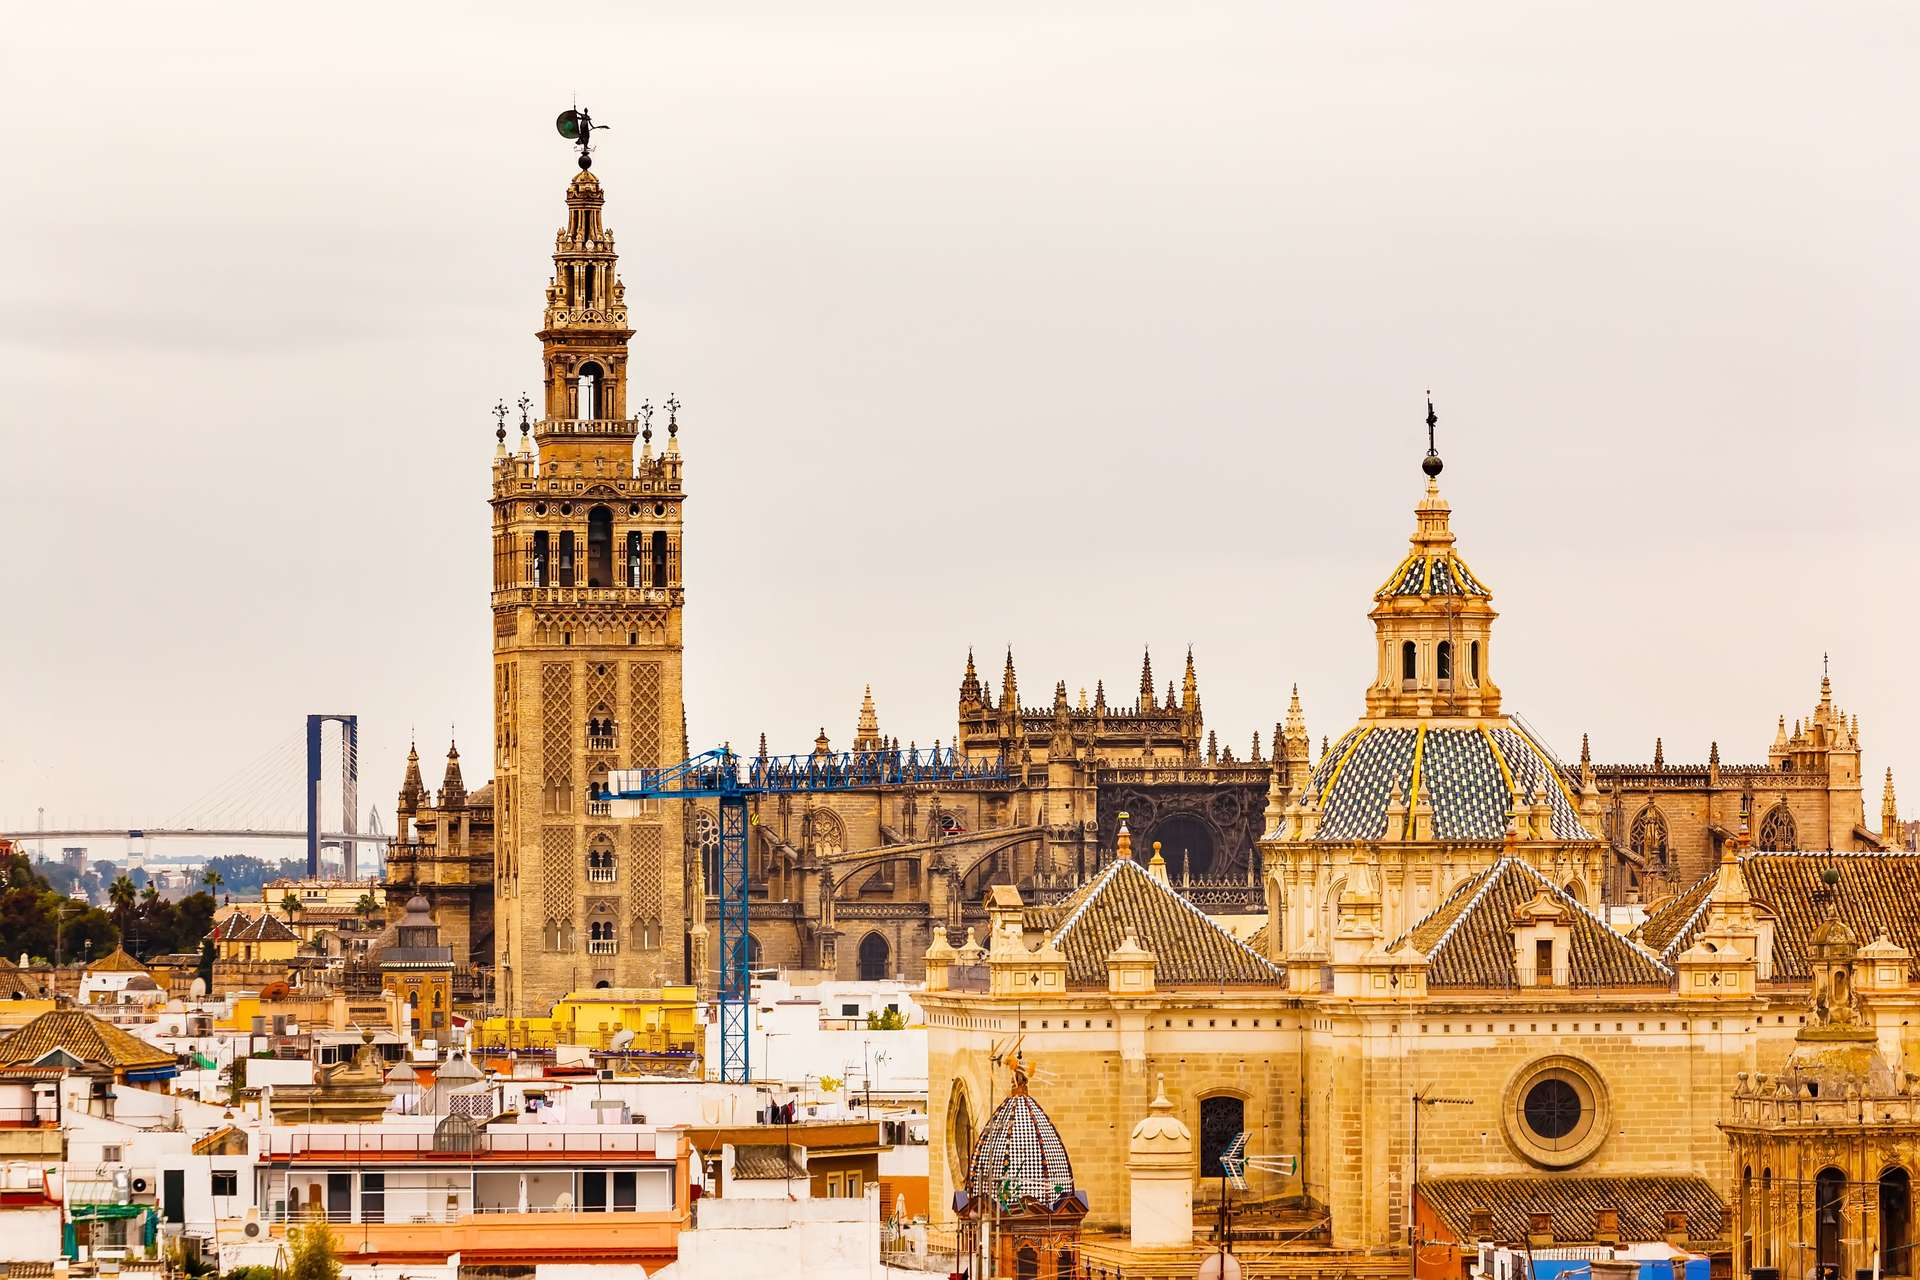 Spanje Sevilla Giralda Spire Bell Tower Seville Cathedra, Cathedral of Saint Mary of the See Church of El Salvador